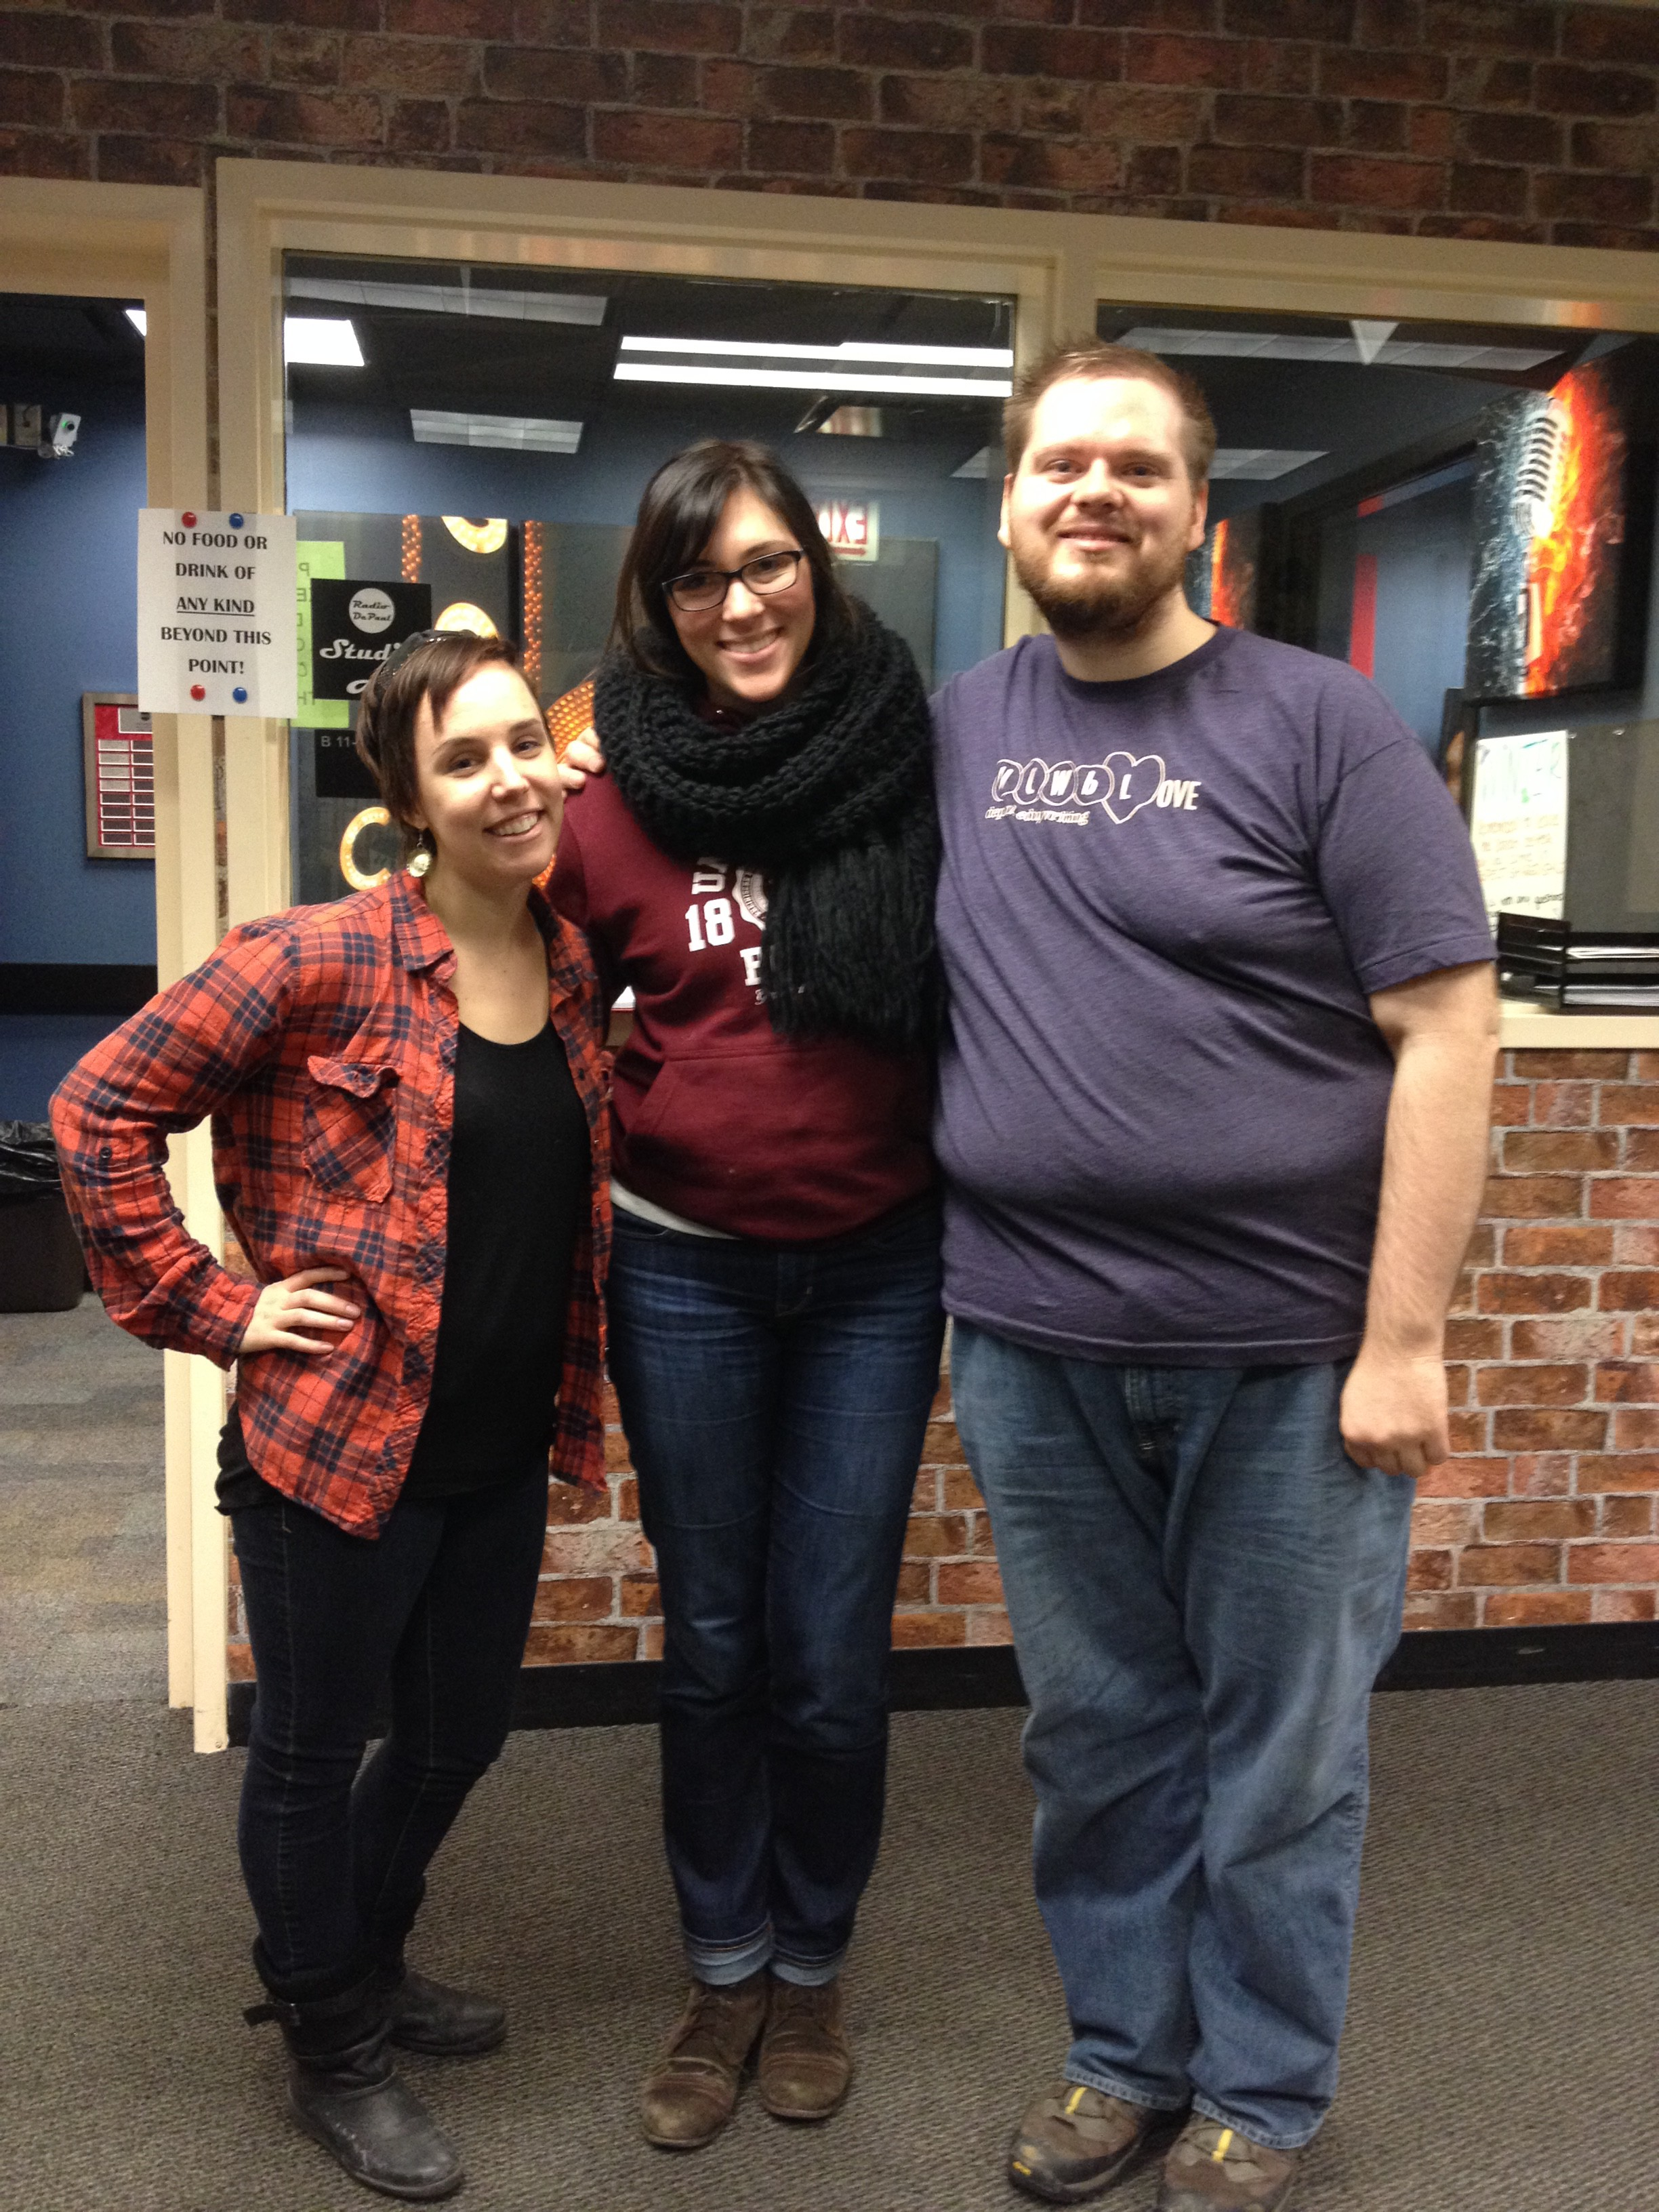 Amber, Megan, and Brandon had a swell time talking about the non-profit writing center, 826Chi!